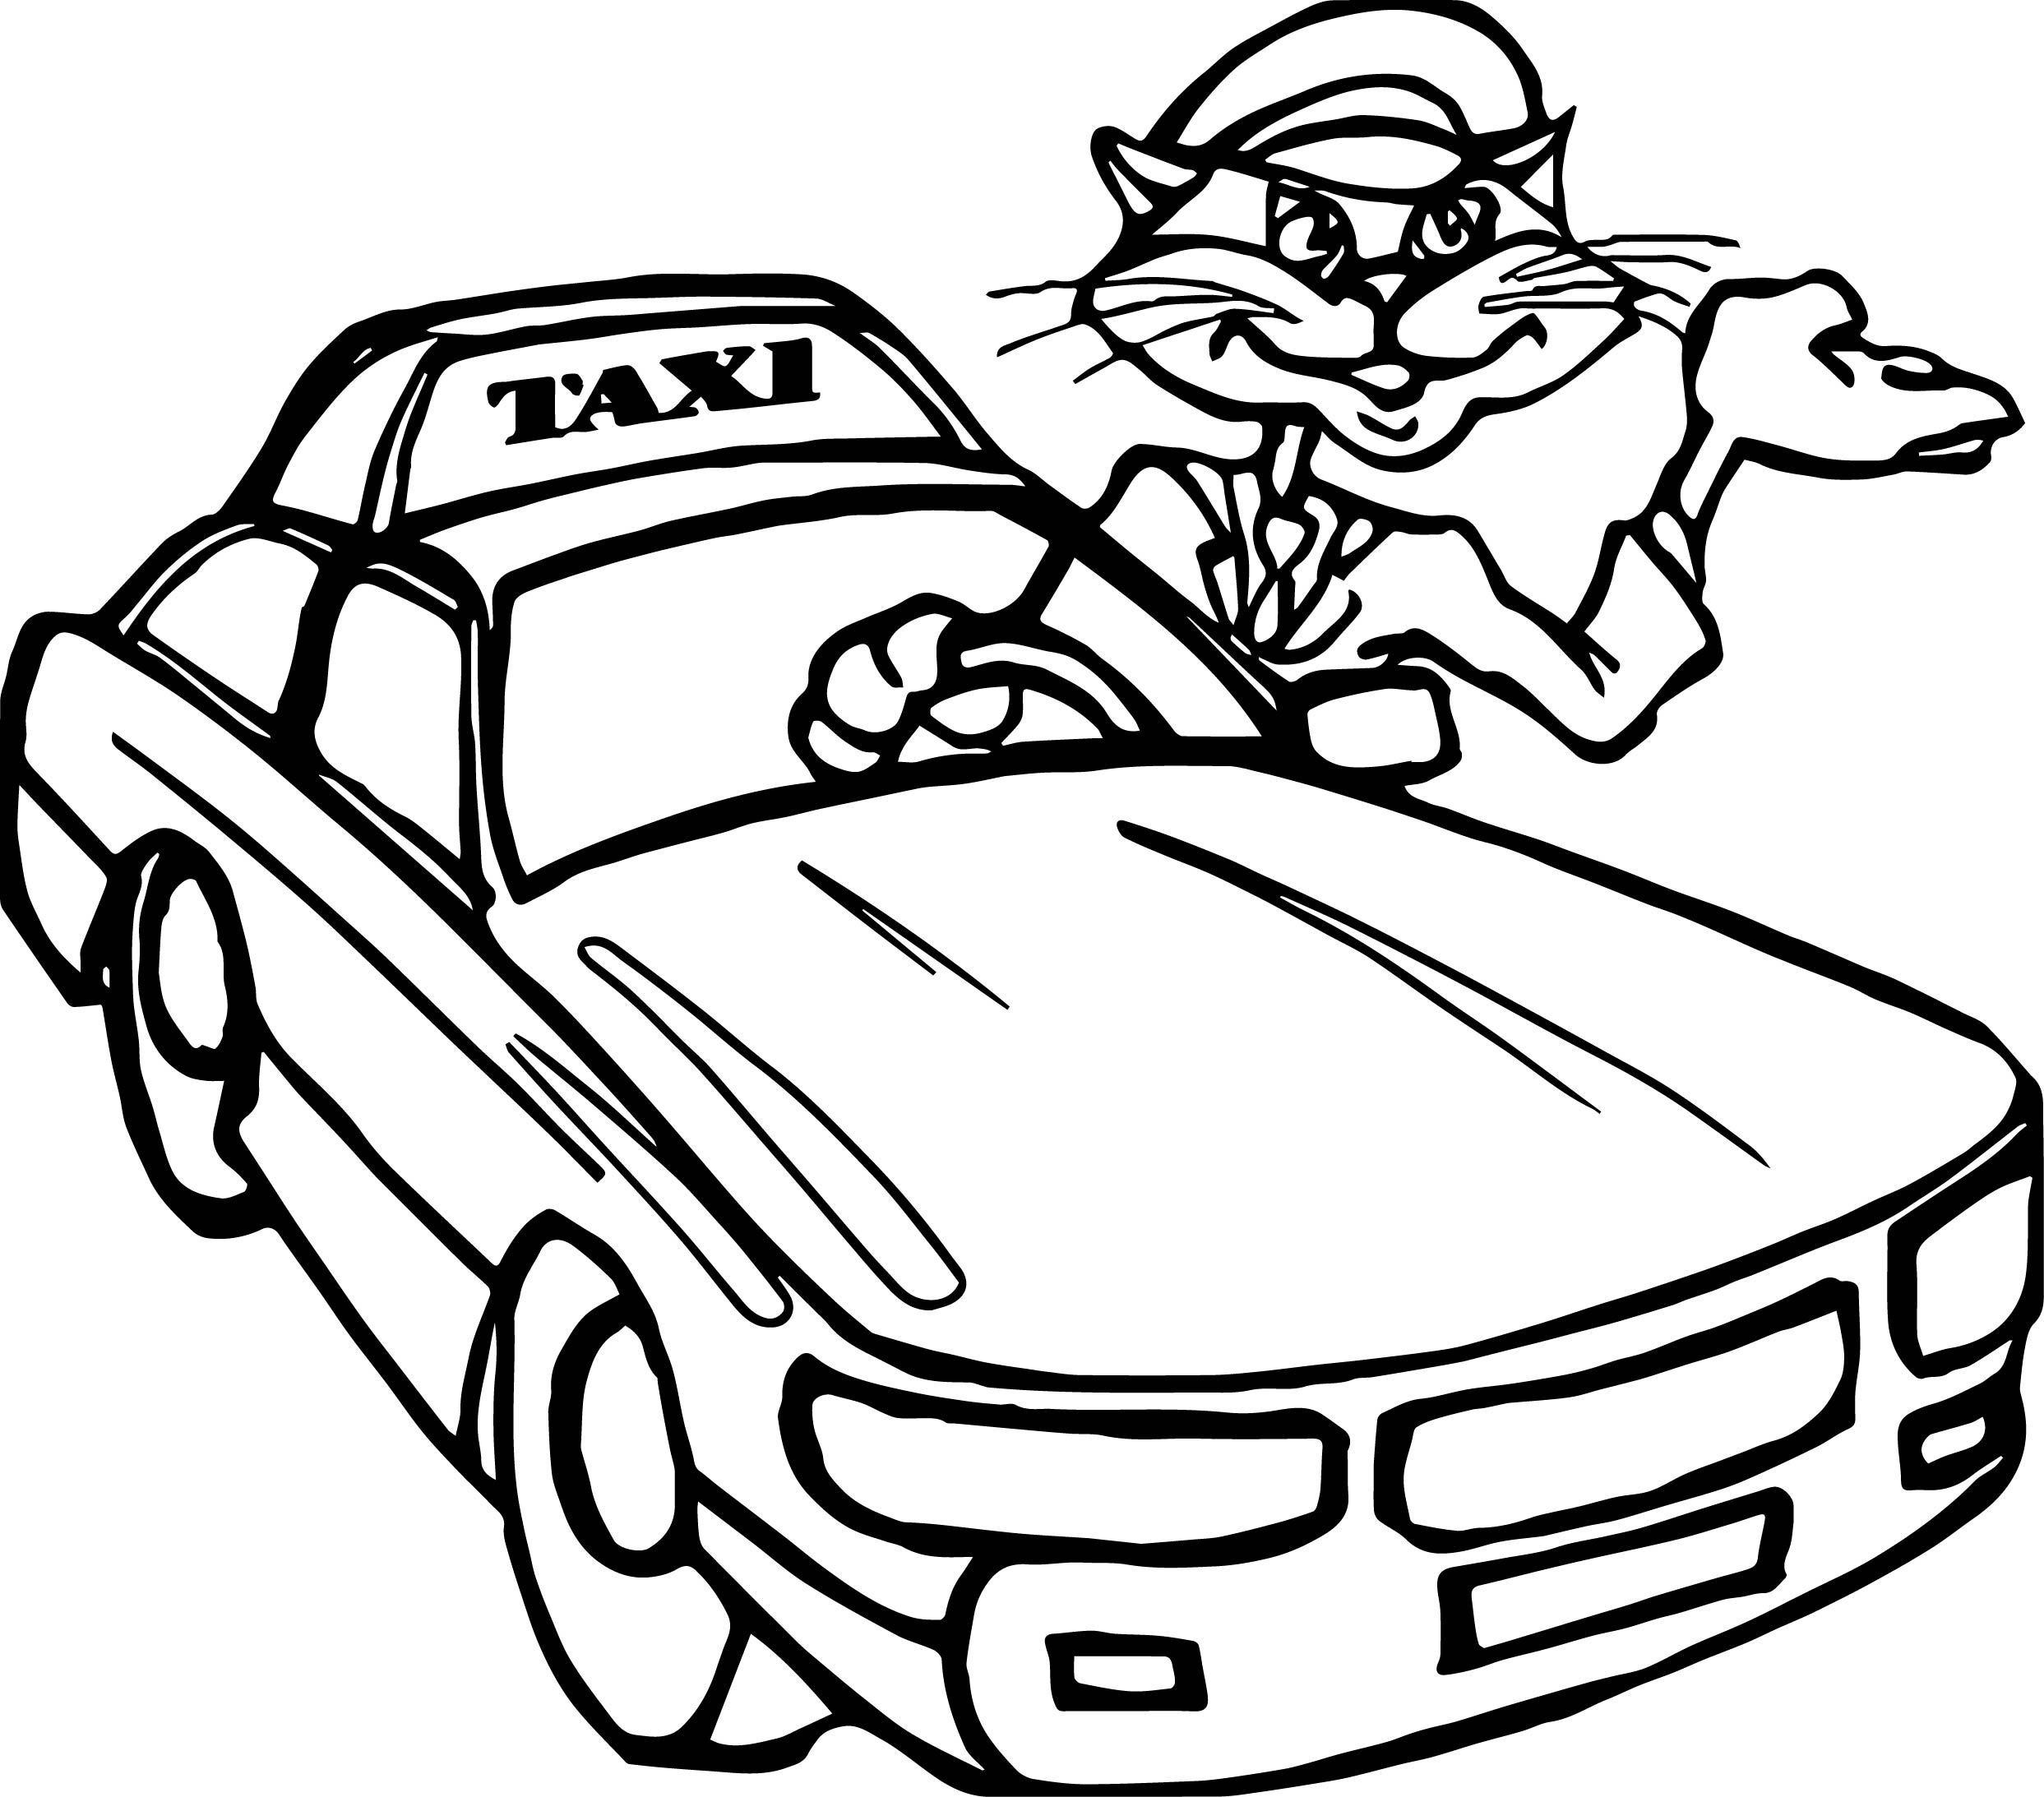 Nice Taxi Cat Driver Car Coloring Page